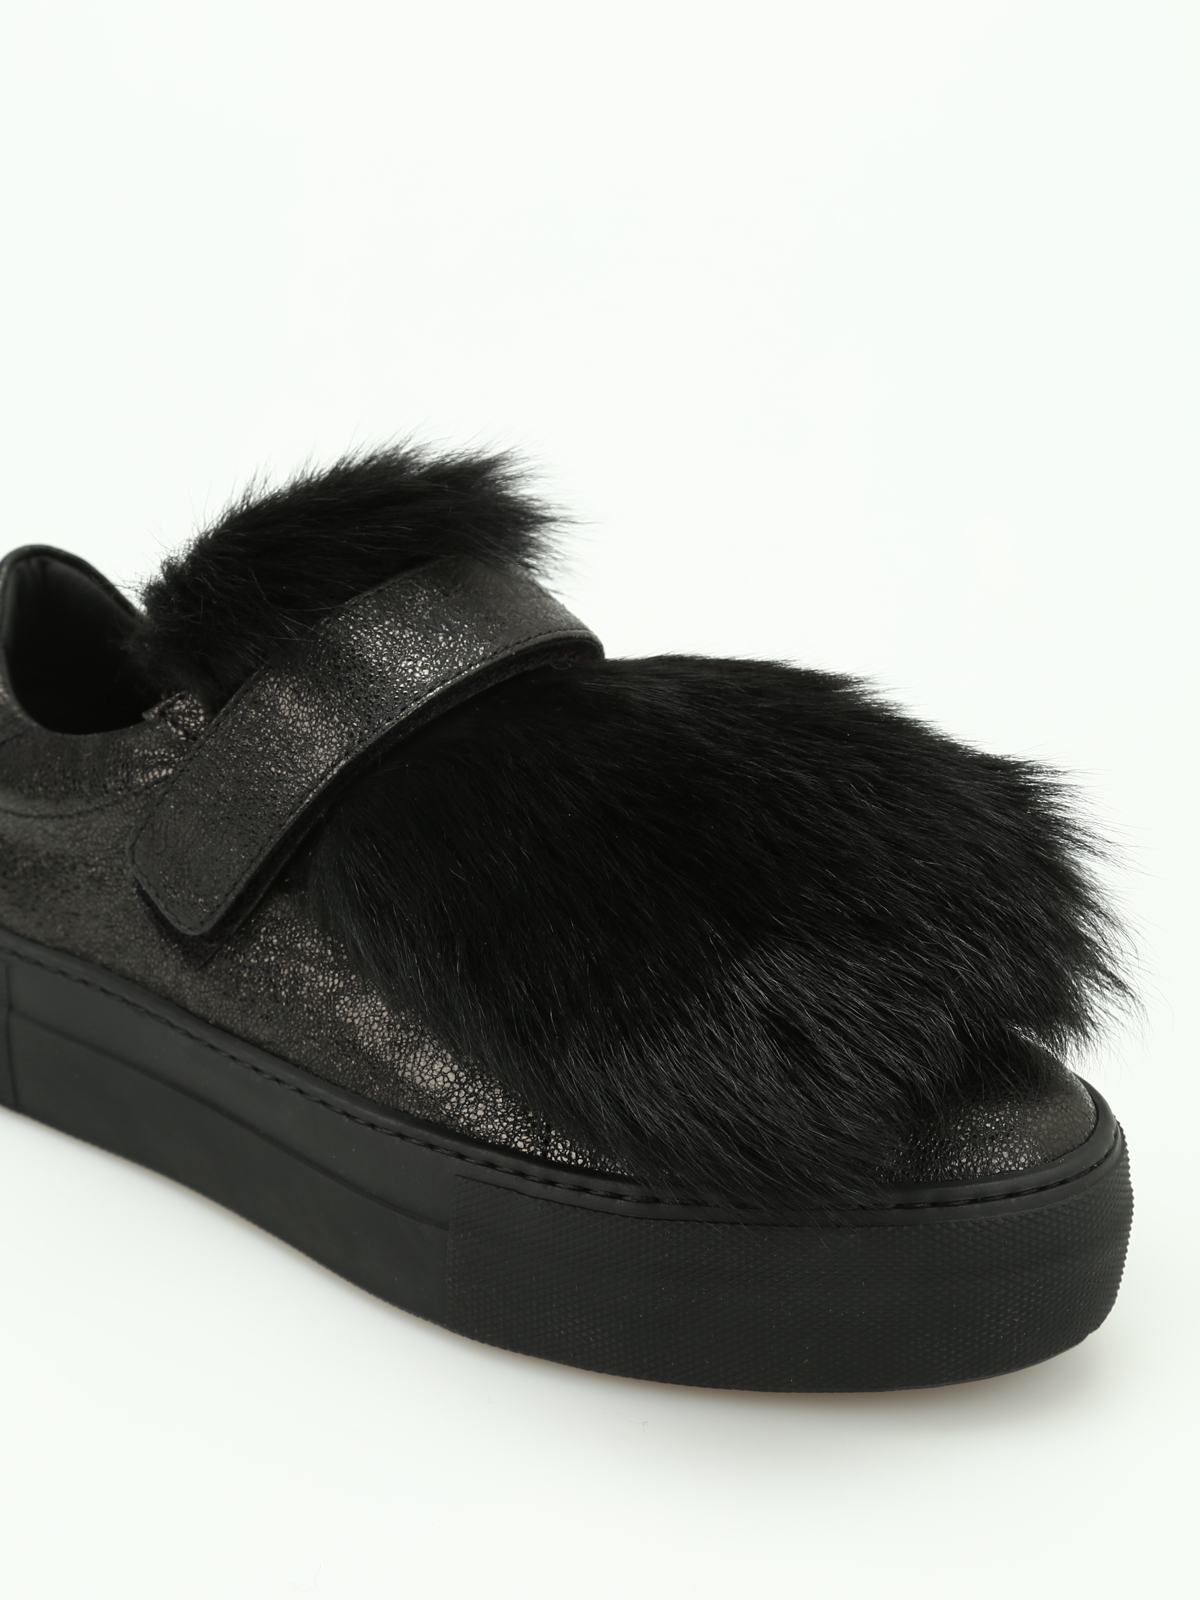 f83f9cb17 Moncler - Victoire lamb fur insert sneakers - trainers - C2 09A ...